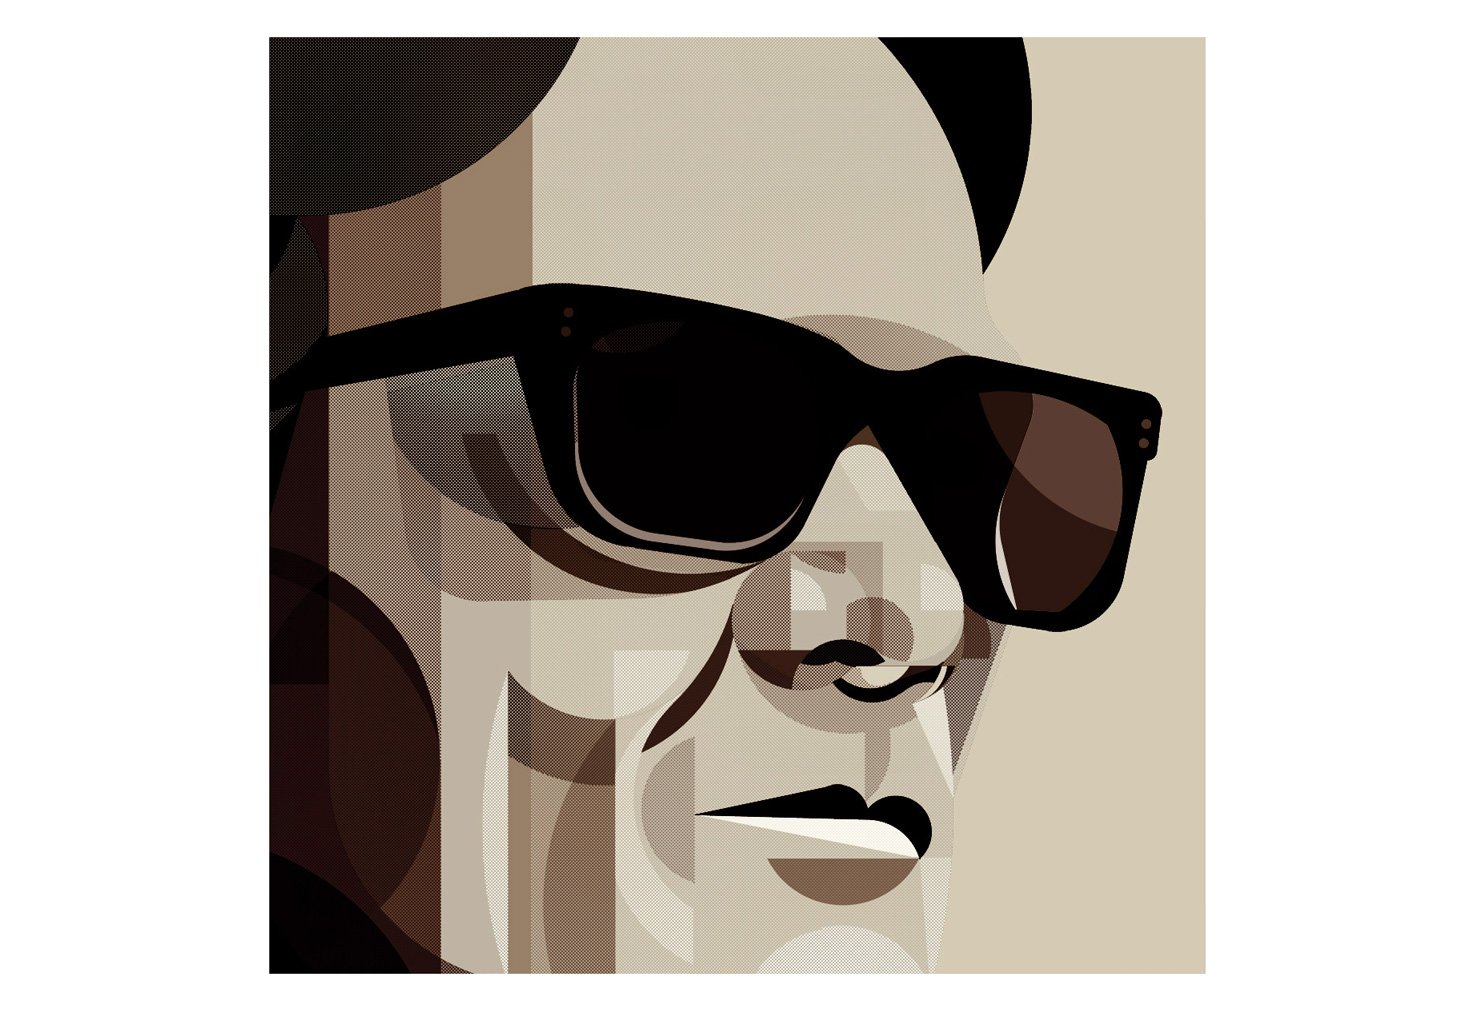 pasolini-illustrated-portrait